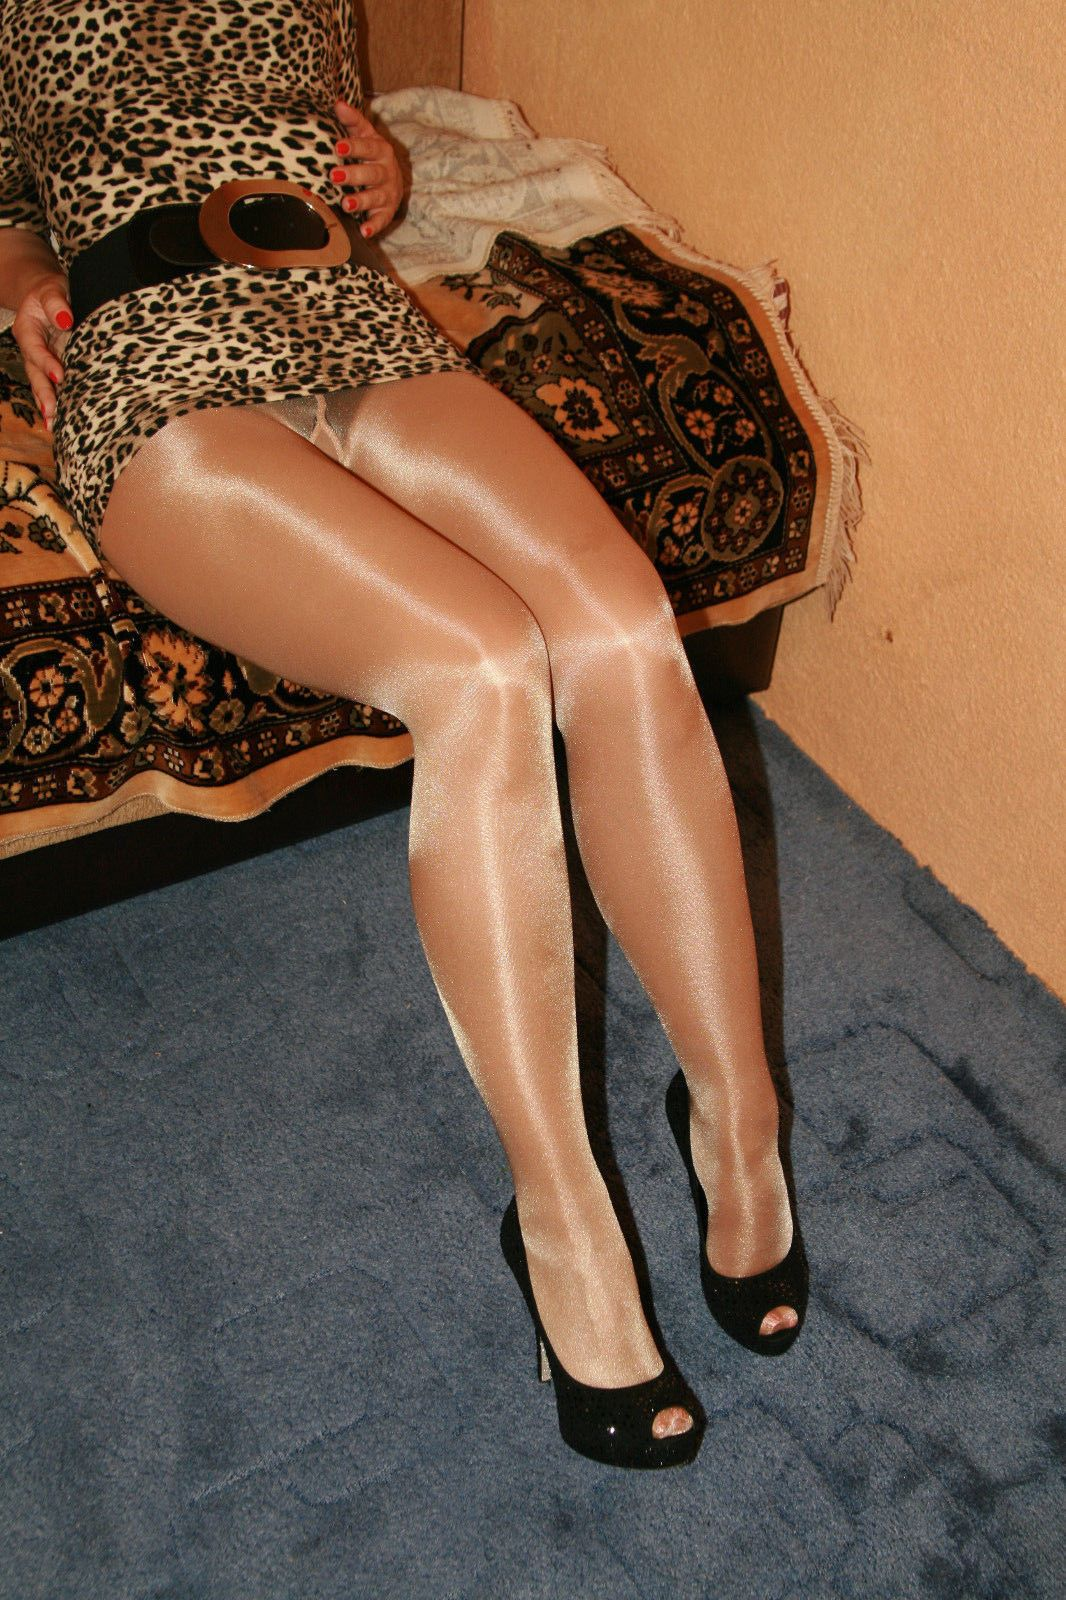 31ad98f38c5 Omero Very High Glossy Shine Pantyhose Tights 40 Den Tea